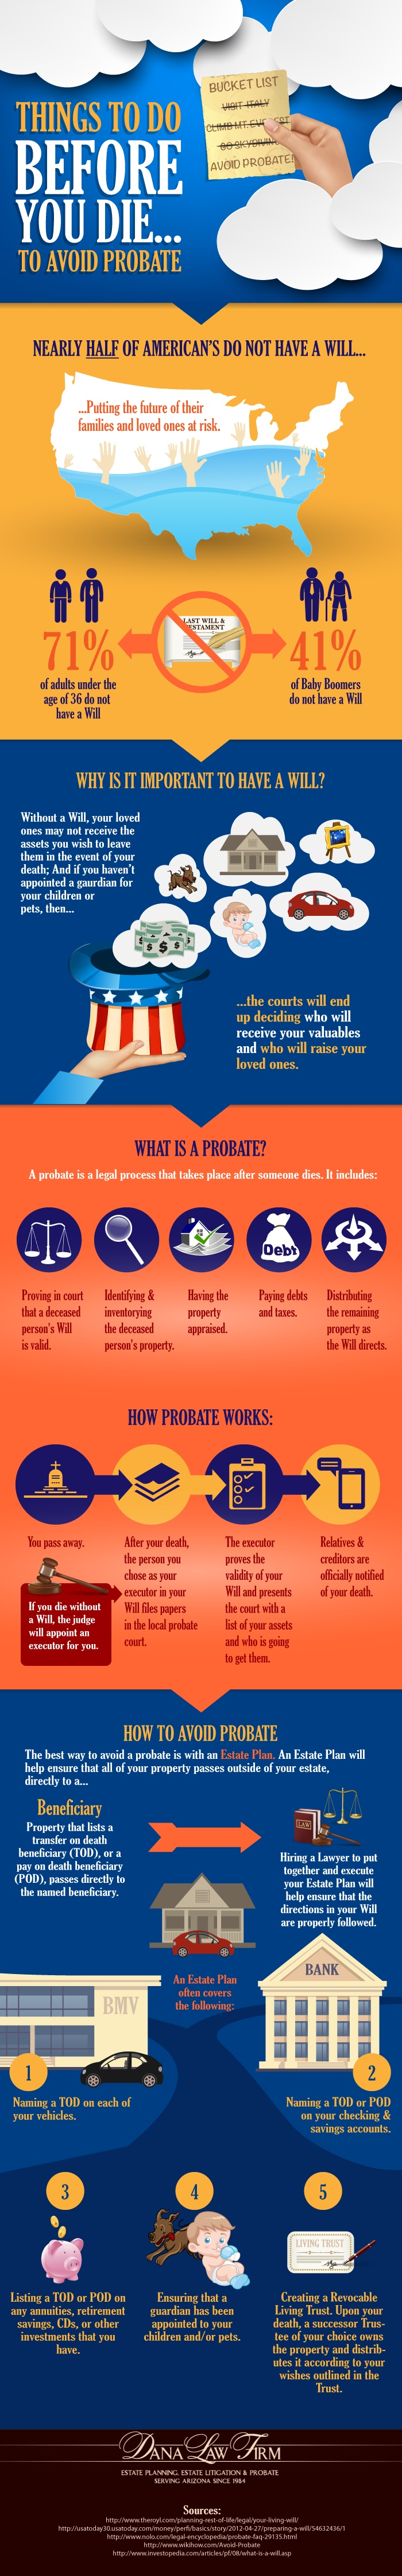 Things To Do Before You Die To Avoid Probate